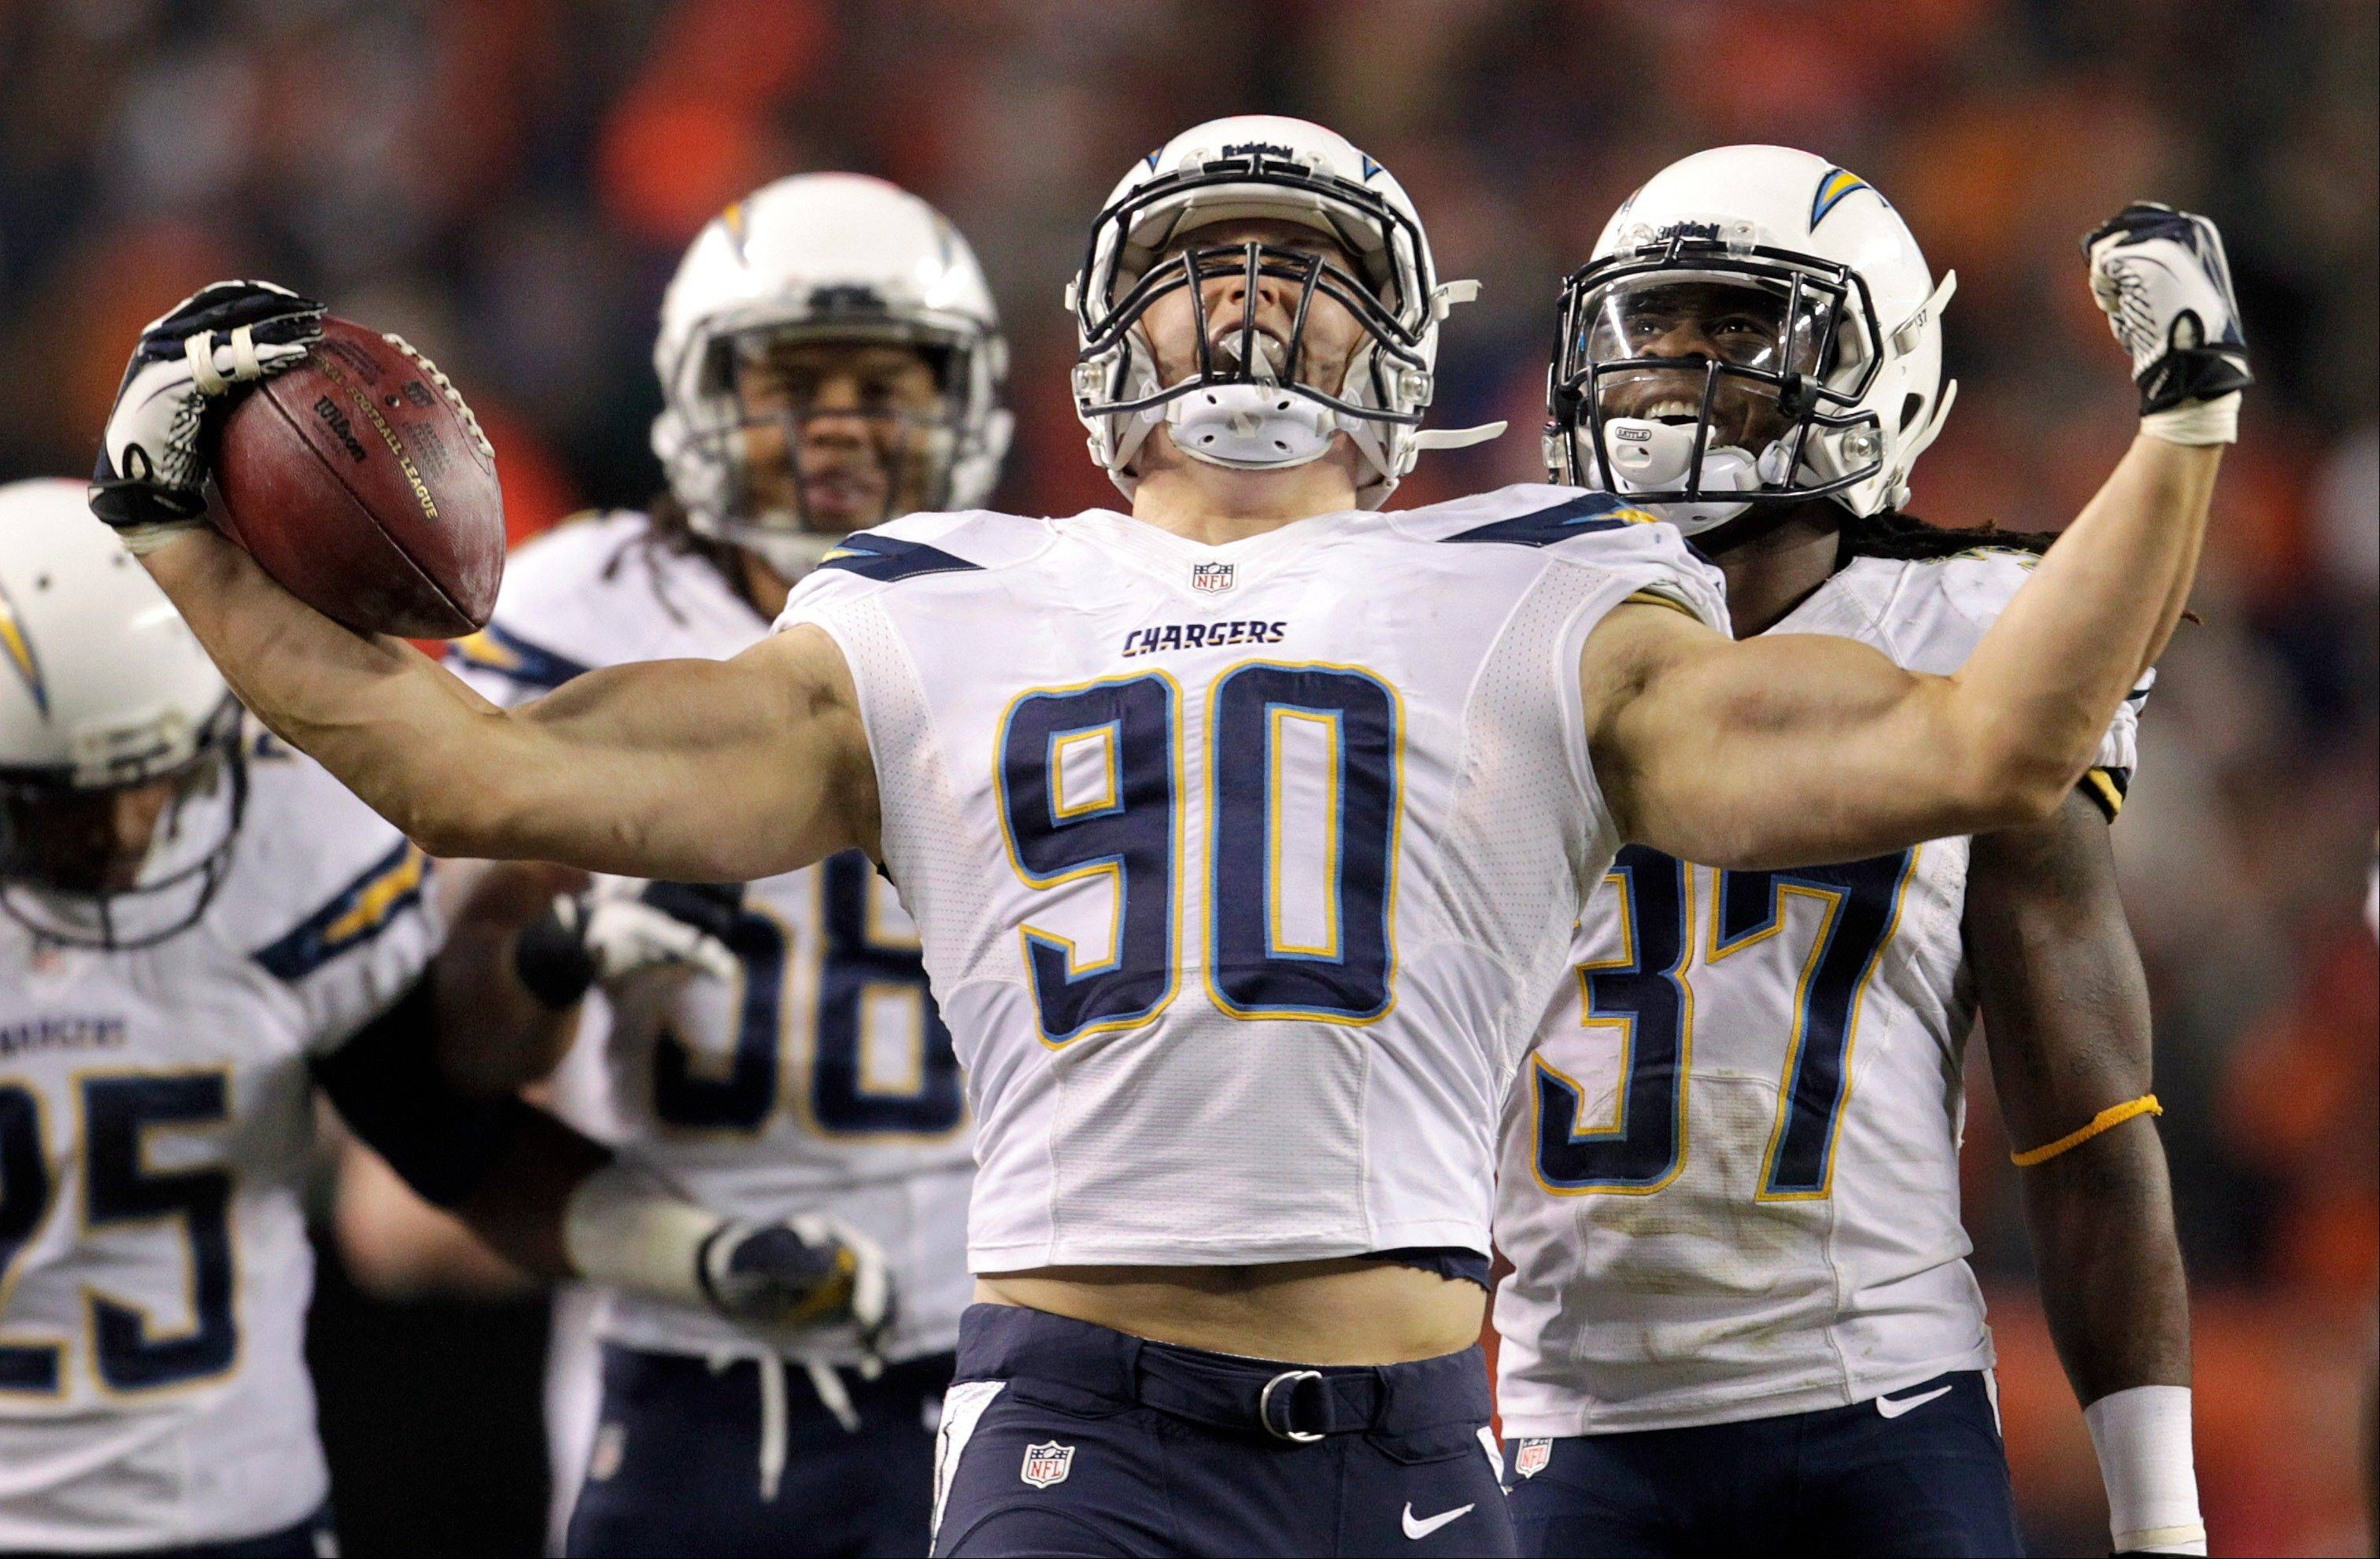 San Diego Chargers linebacker Thomas Keiser (90) reacts after intercepting a pass by Denver Broncos quarterback Peyton Manning (18) in the fourth quarter of an NFL football game, Thursday, Dec. 12, 2013, in Denver.